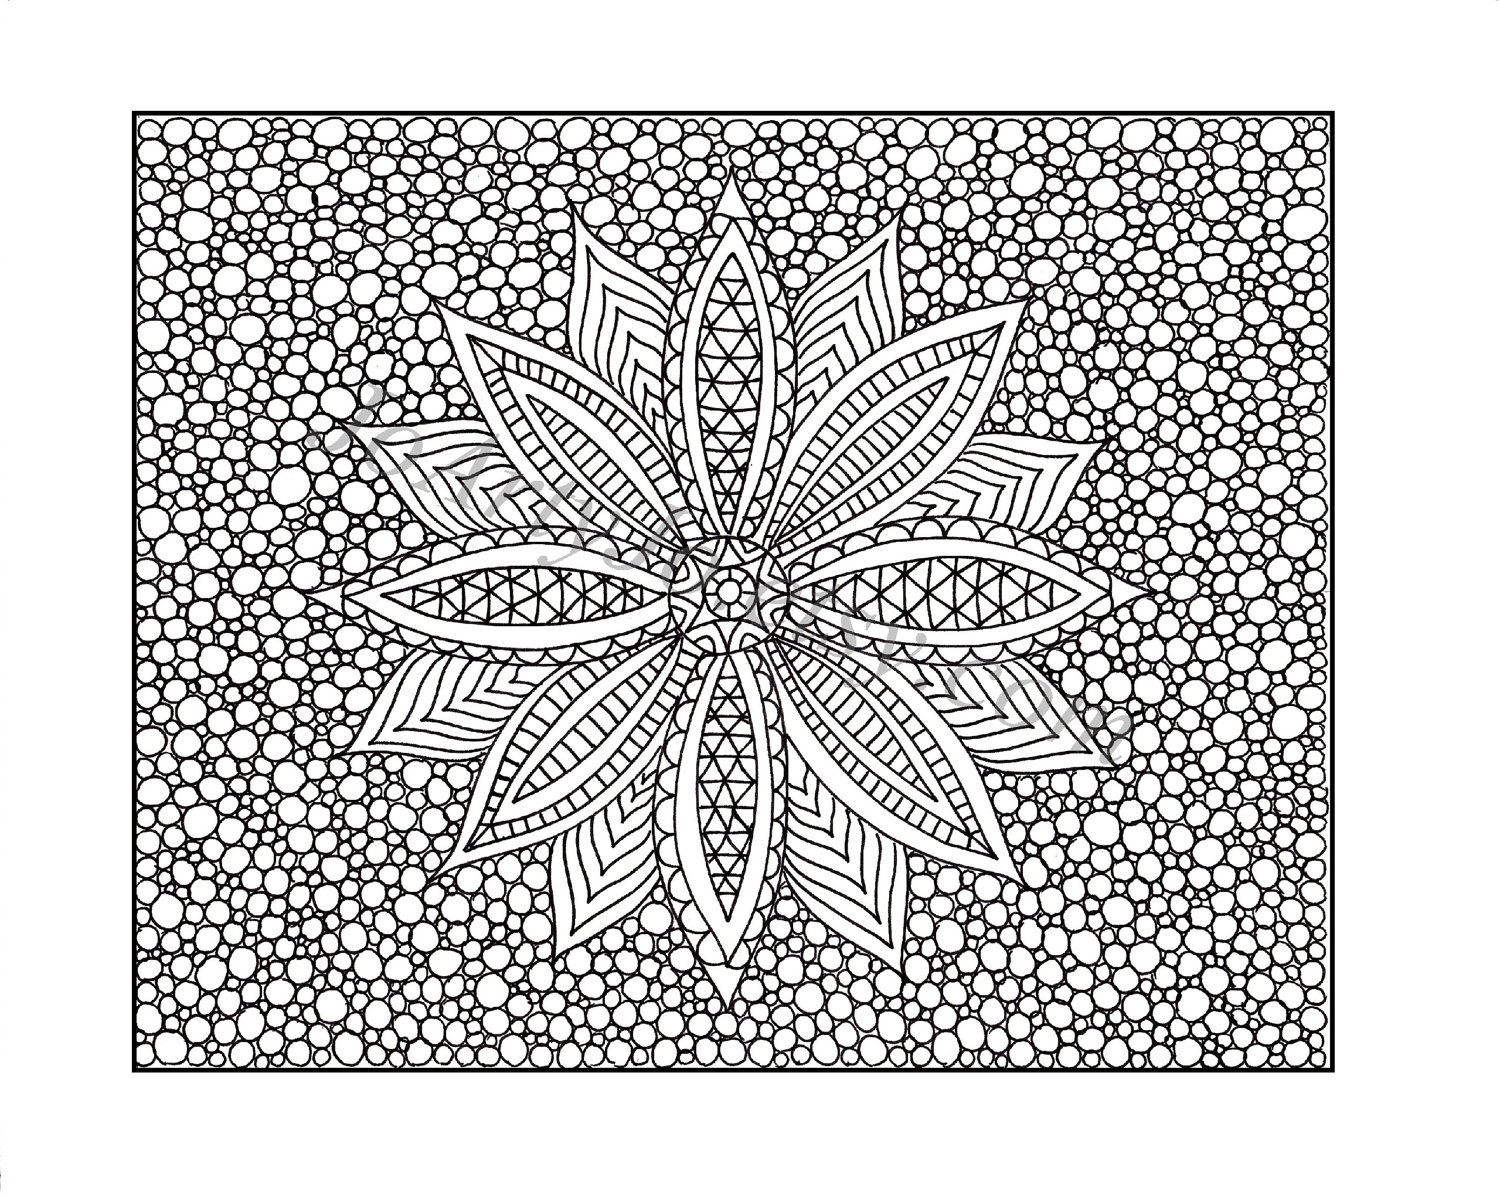 Free Printable Difficult Coloring Pages For Adults At Getdrawings